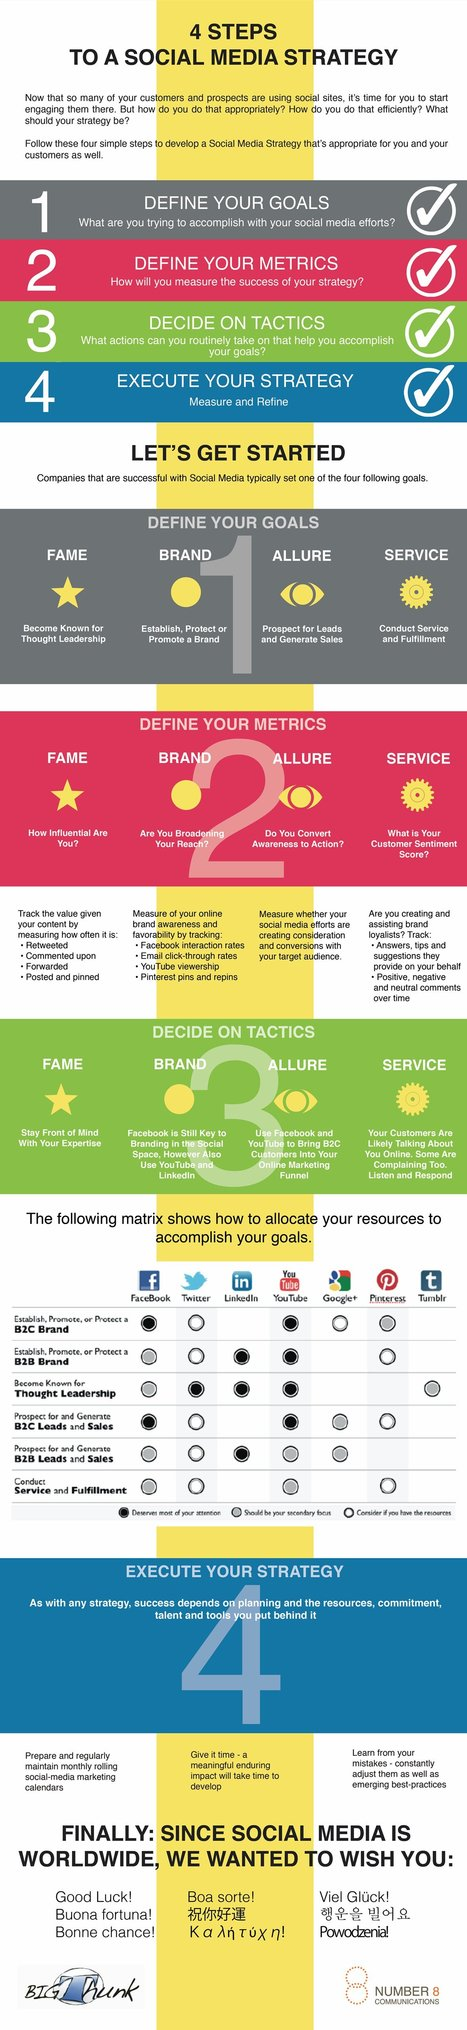 Infographic: The 4 Steps to Social Media Marketing | Social media! | Scoop.it